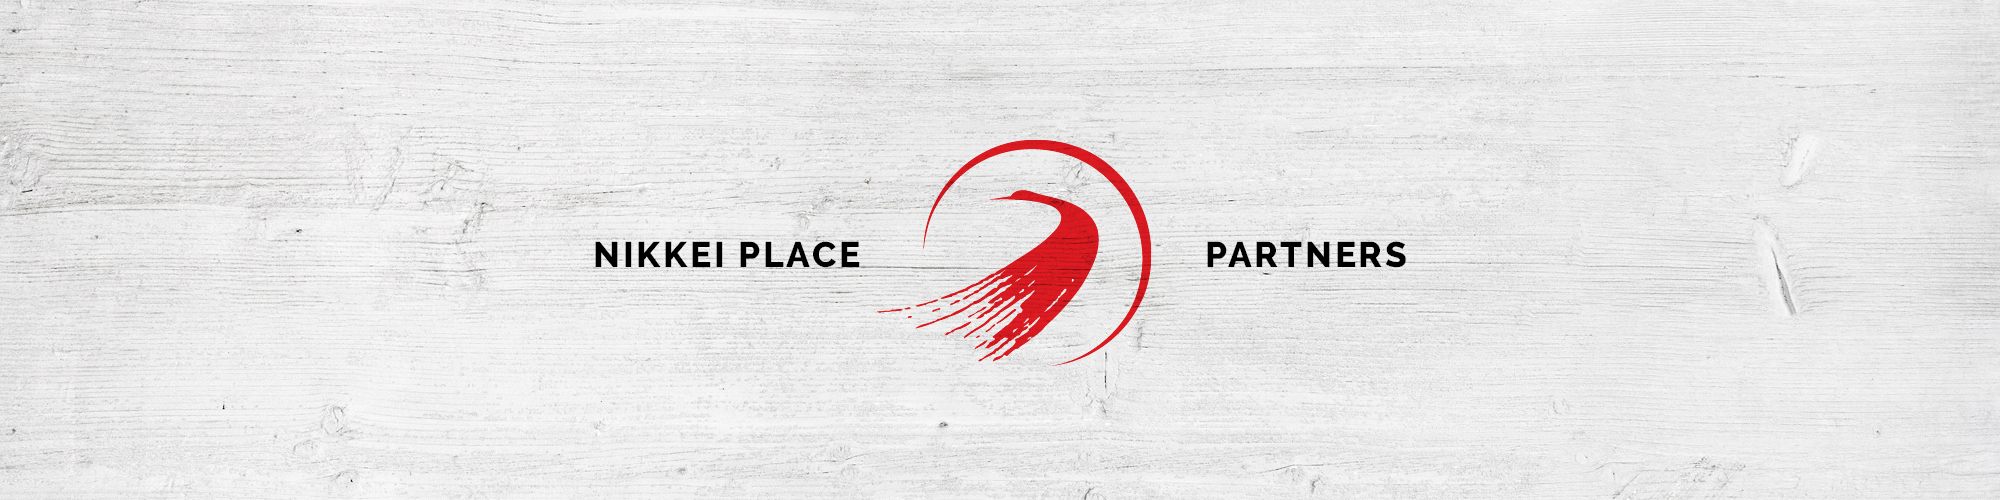 NikkeiPlace_Partners_Banner_2000x500_2.jpg